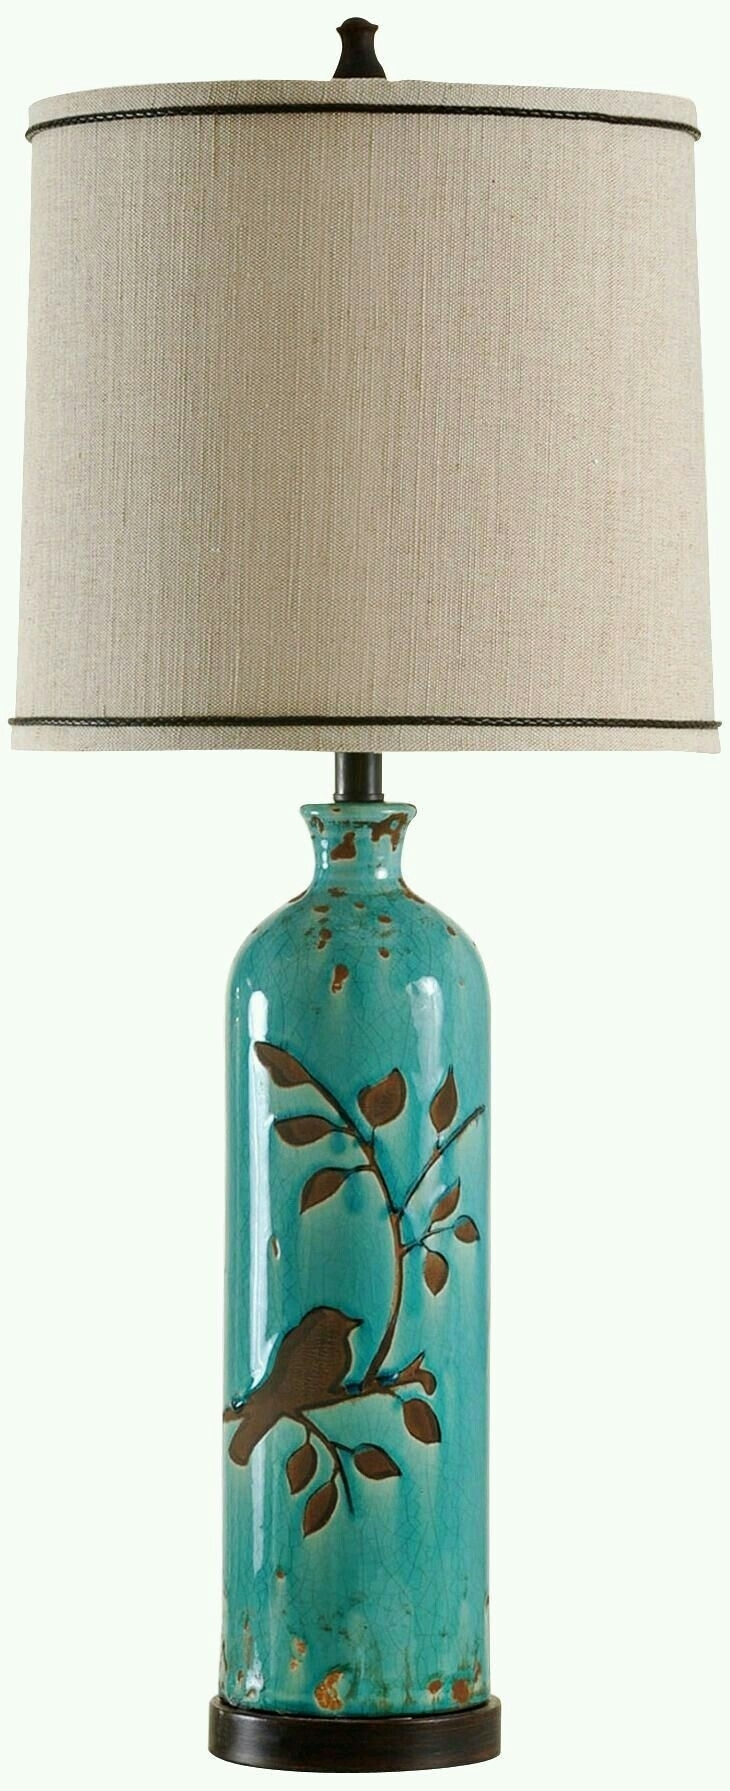 Pinguzin Oz On Iki | Pinterest | Pottery Ideas, Pottery And Intended For Teal Living Room Table Lamps (#12 of 15)